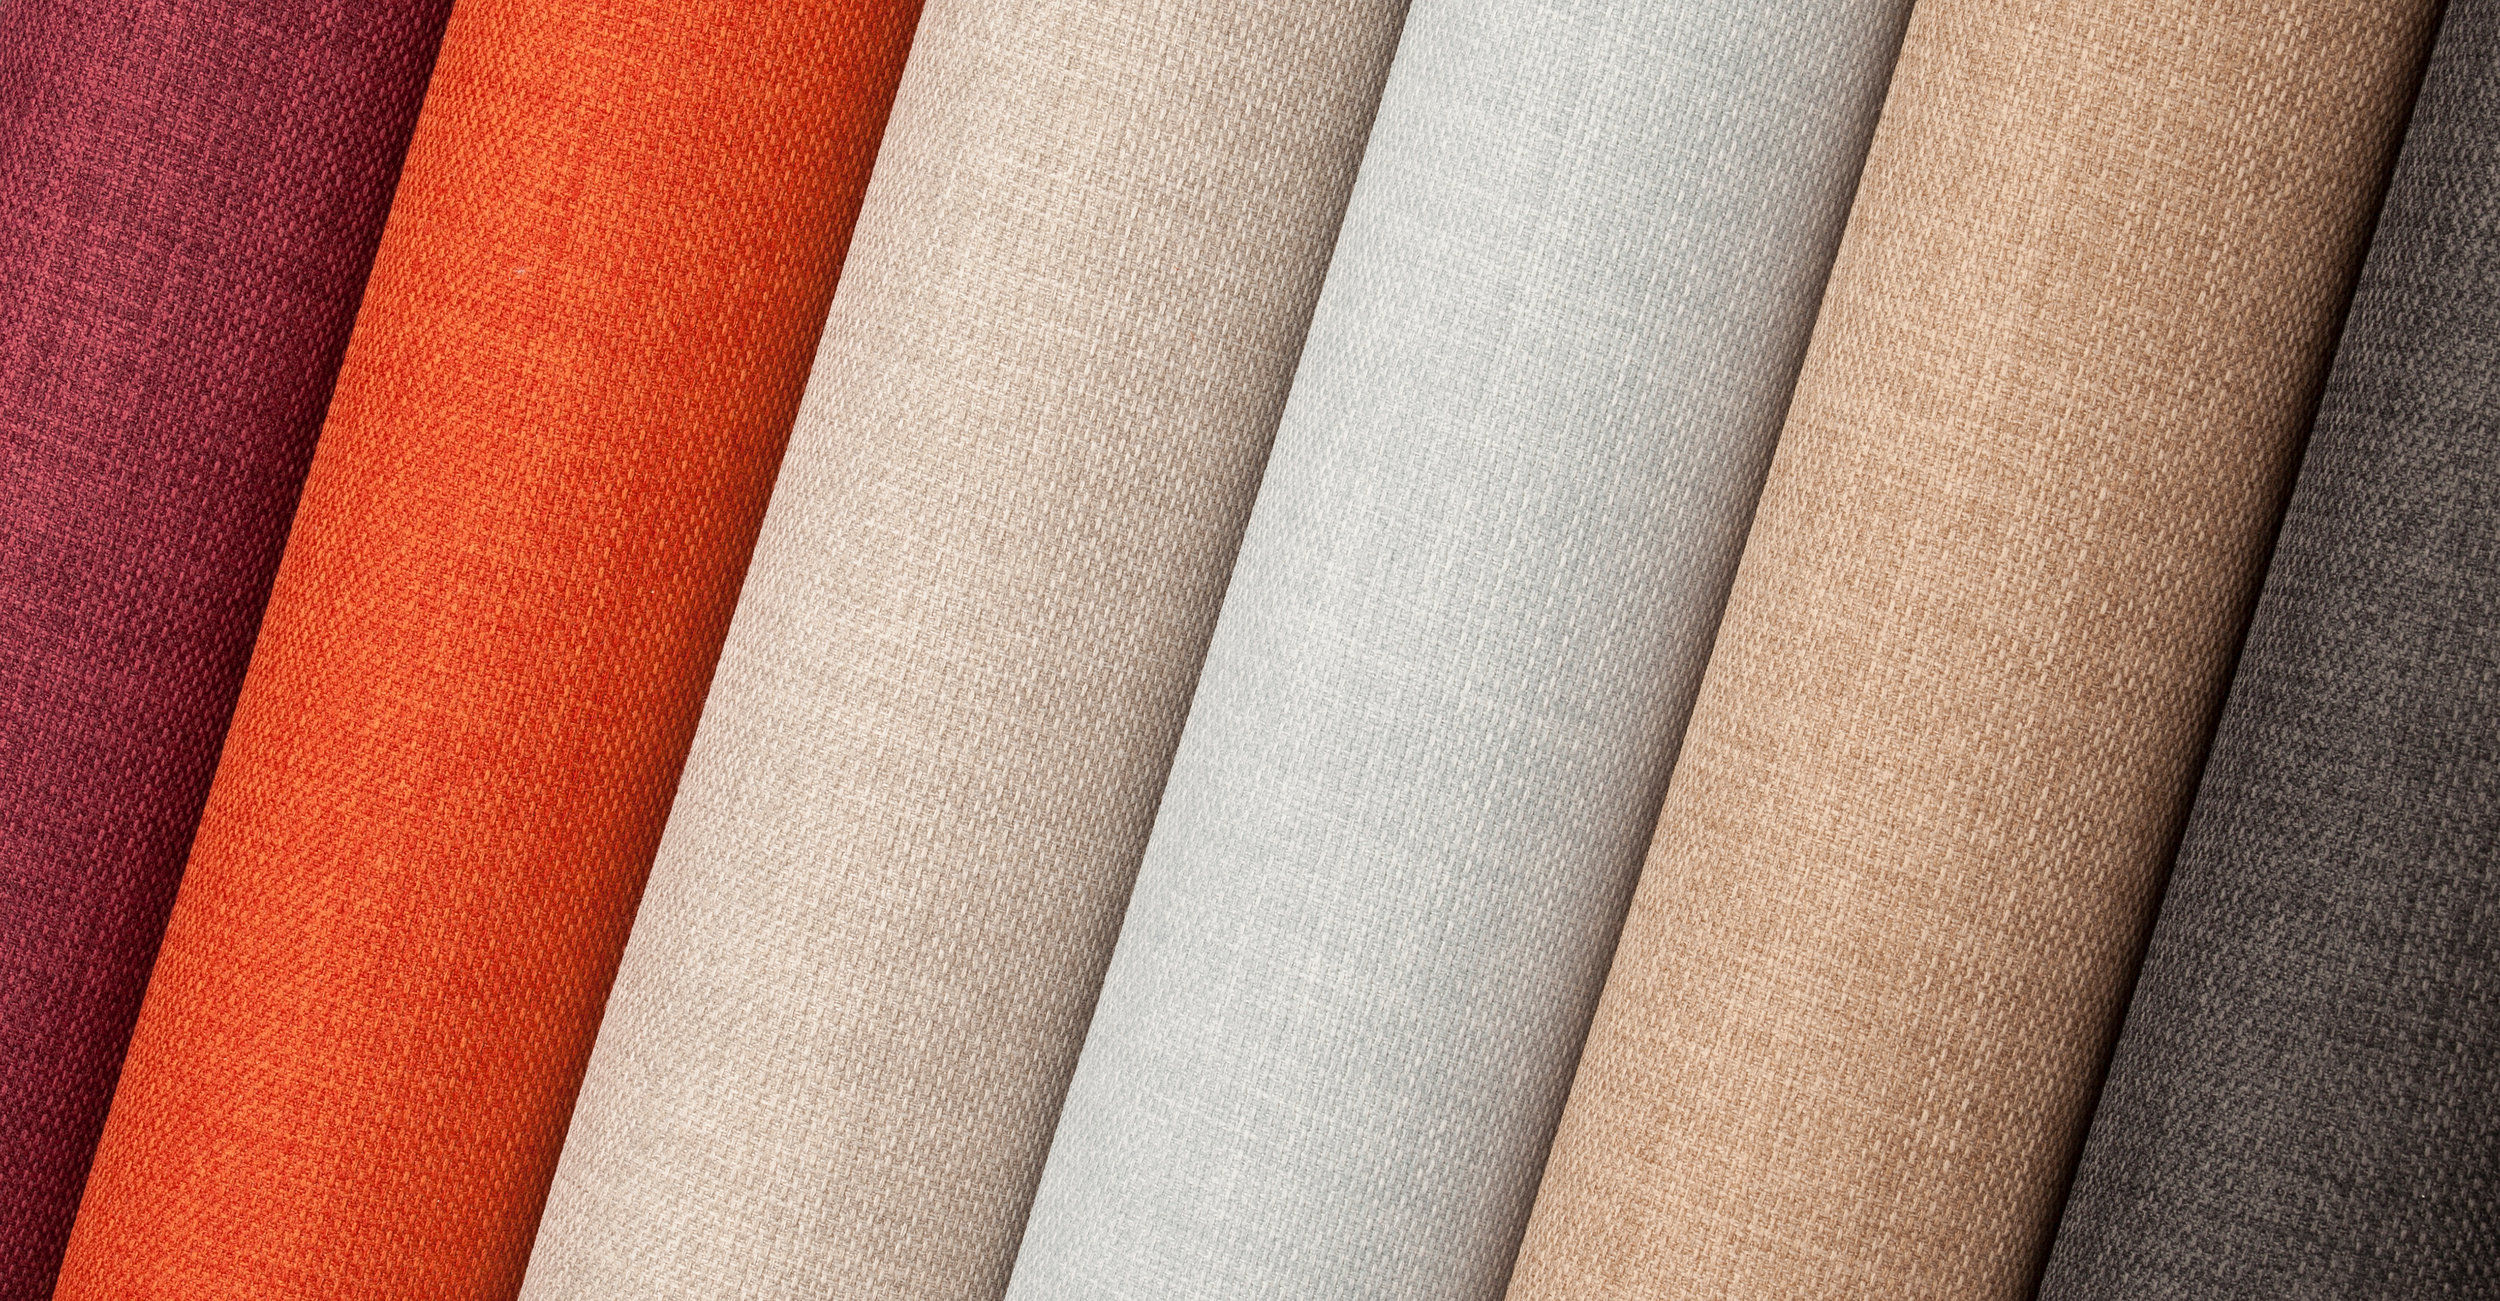 Fabric rolls image for one of the collections